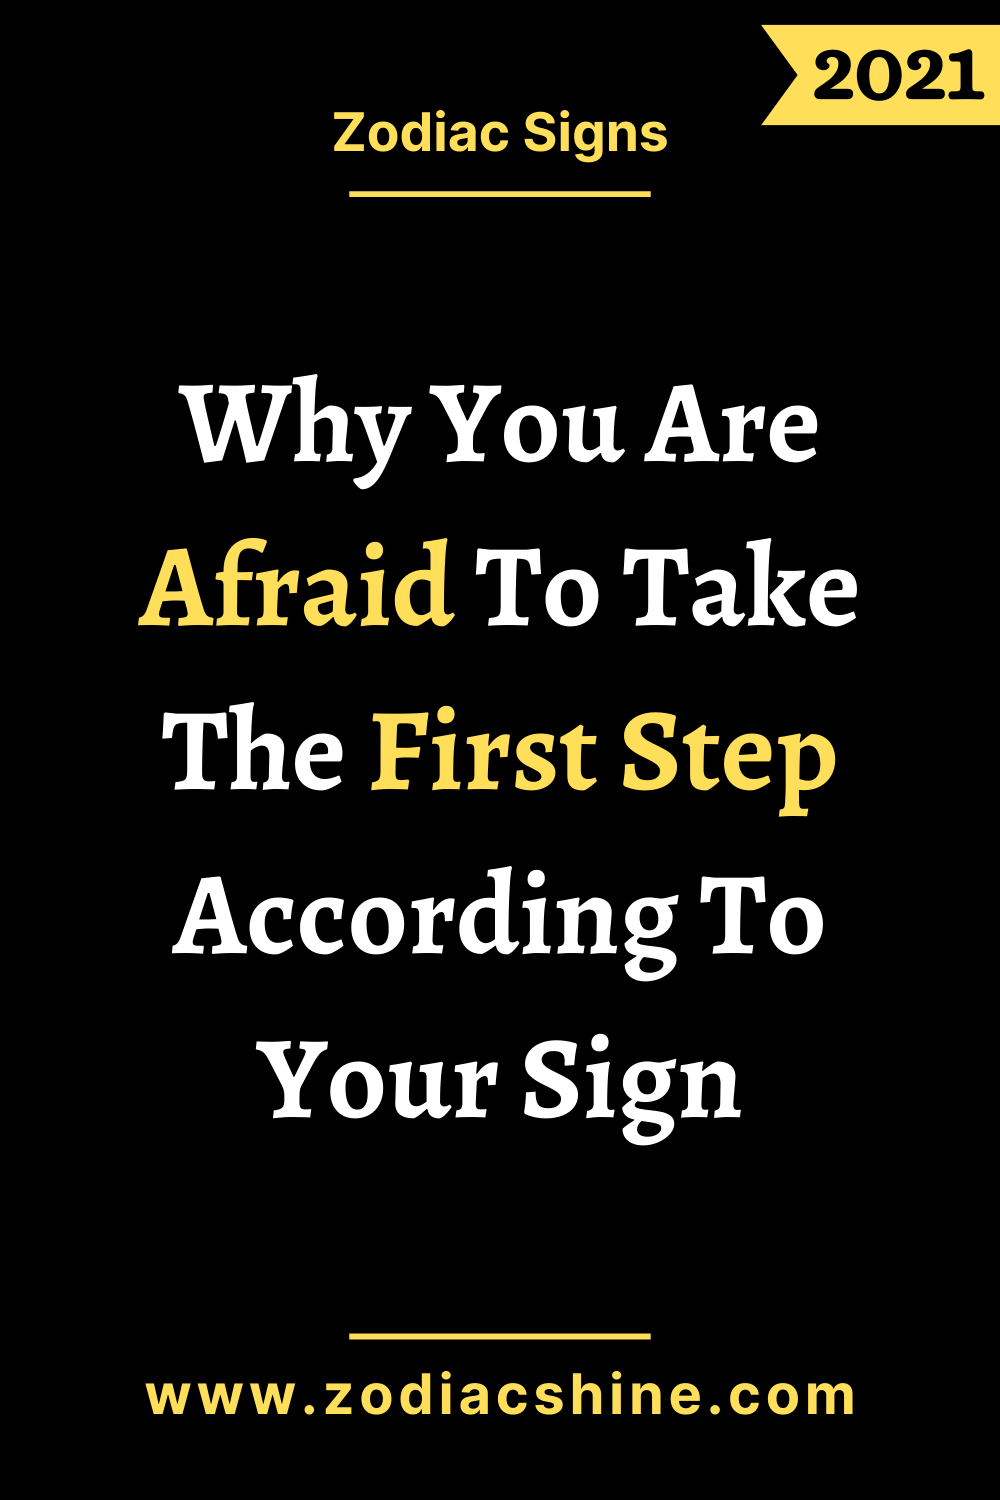 Why You Are Afraid To Take The First Step According To Your Sign